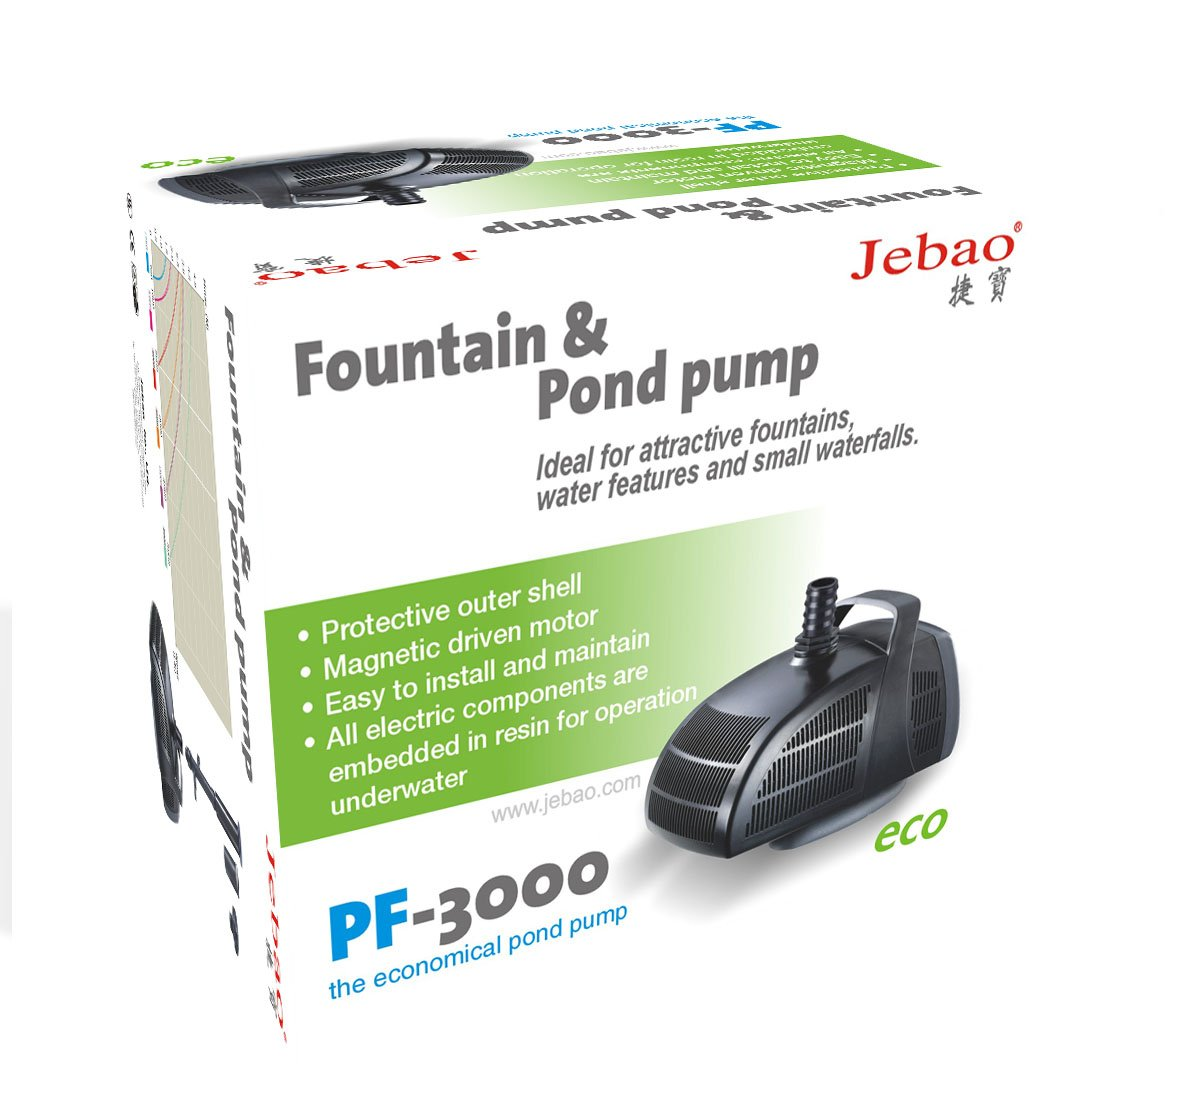 Jebao Submersible Water Pond Pump With Fountain Attachments 3000l H Installing For Pf3000 Garden Outdoors